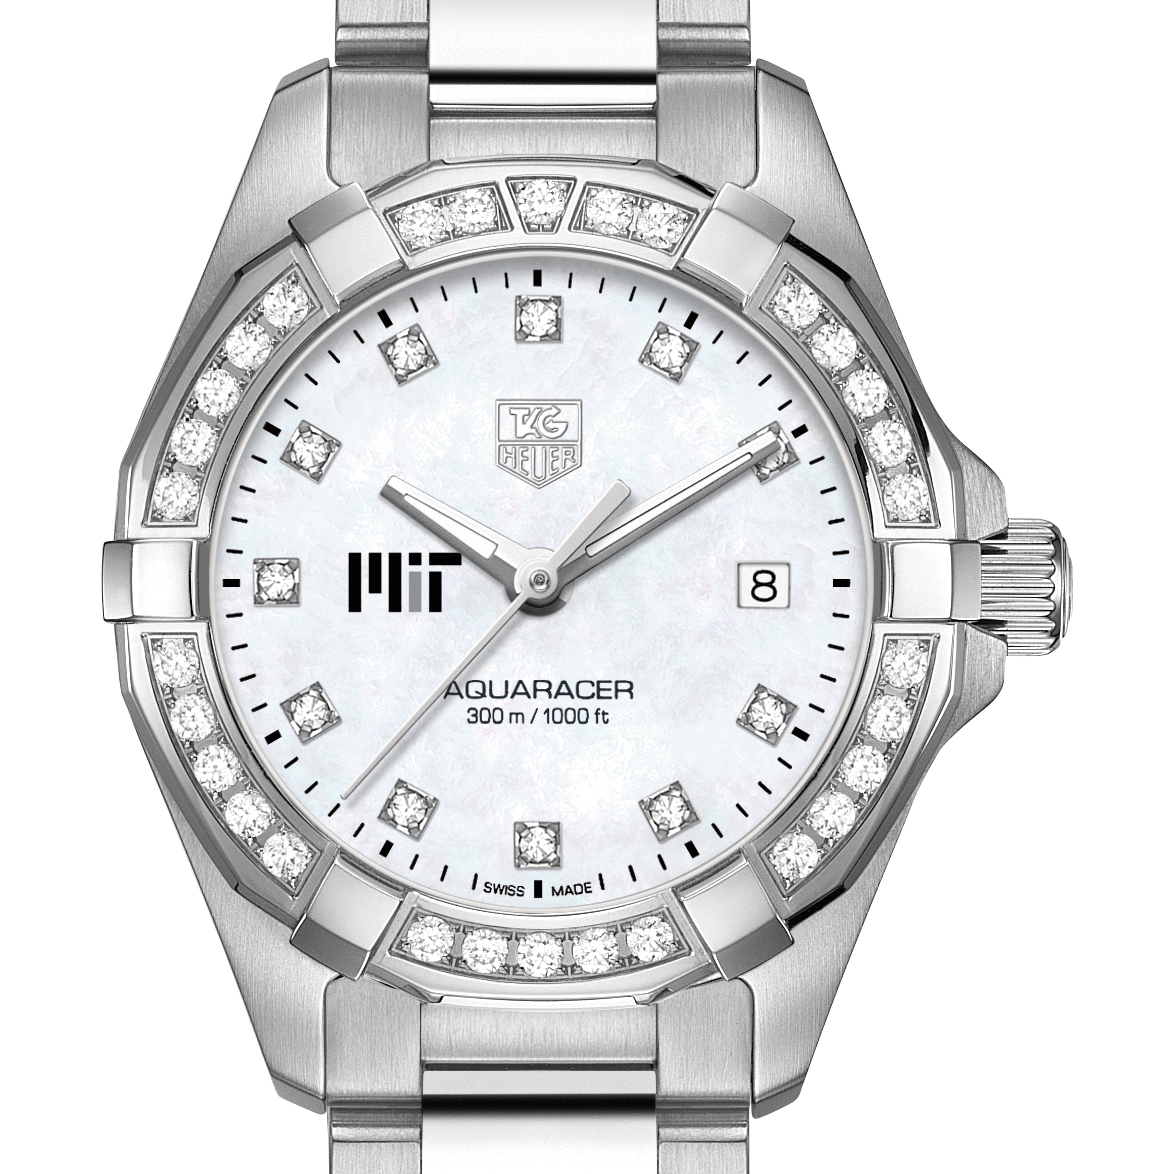 MIT Women's TAG Heuer Steel Aquaracer with MOP Diamond Dial & Diamond Bezel